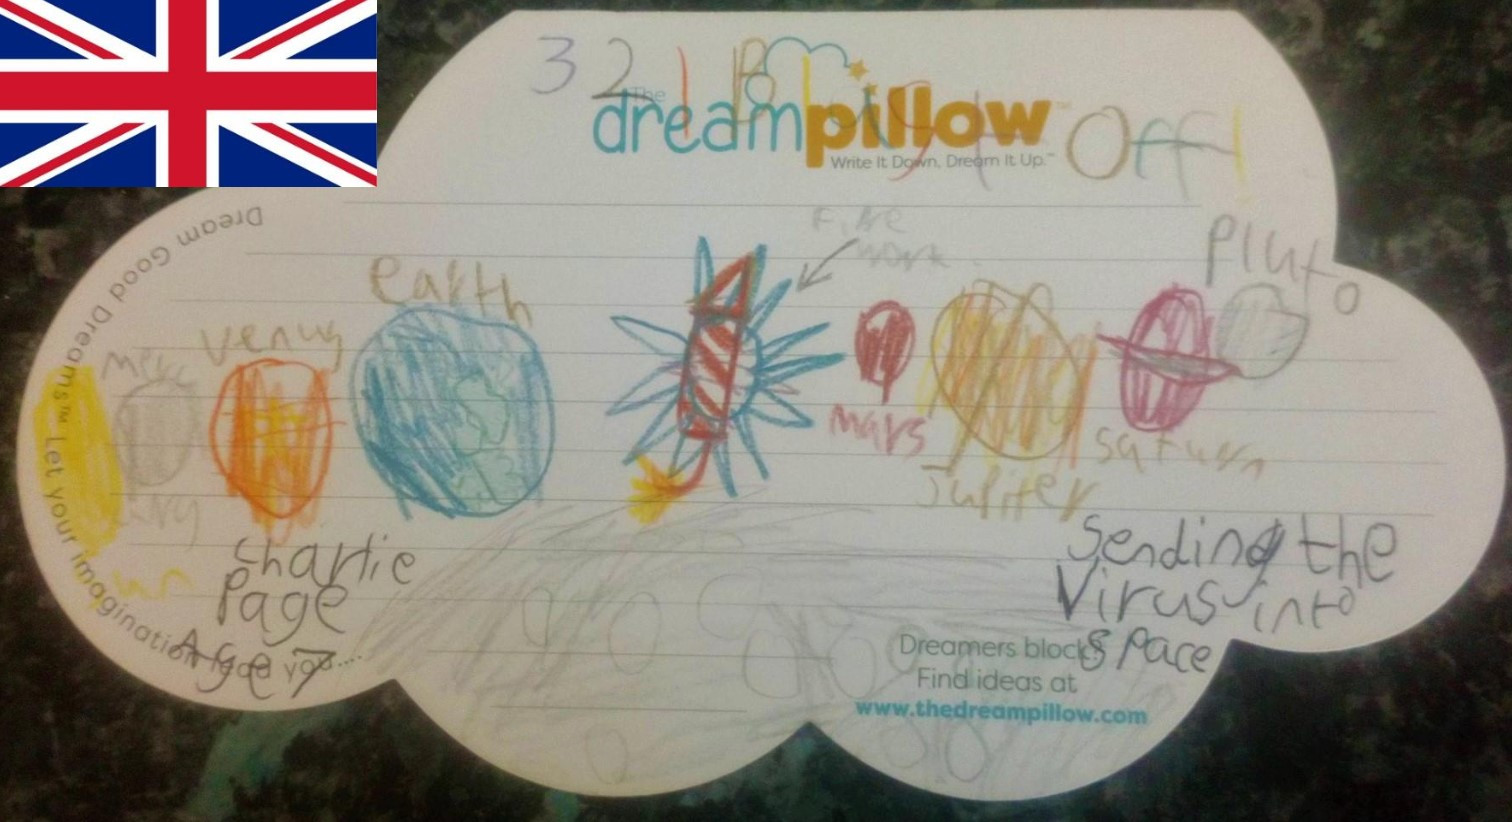 The next three subjects are typical of the determination in the dreams many children have to be rid of this Corona Virus